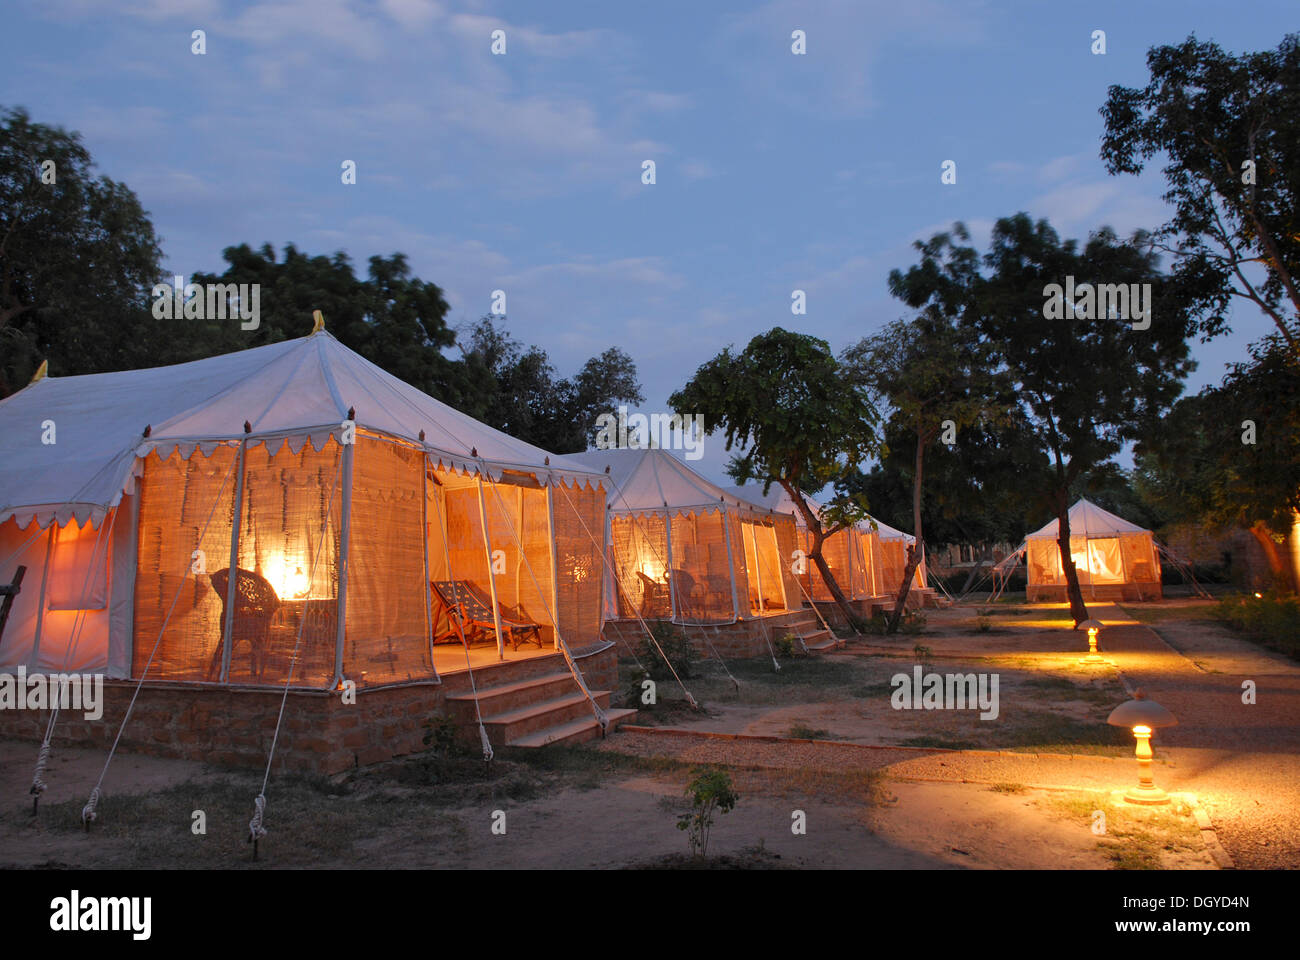 Tents illuminated from the inside Royal Jodhpur C& in Mool Sagar heritage hotel and pleasure gardens of the Maharajas of & Tents illuminated from the inside Royal Jodhpur Camp in Mool ...